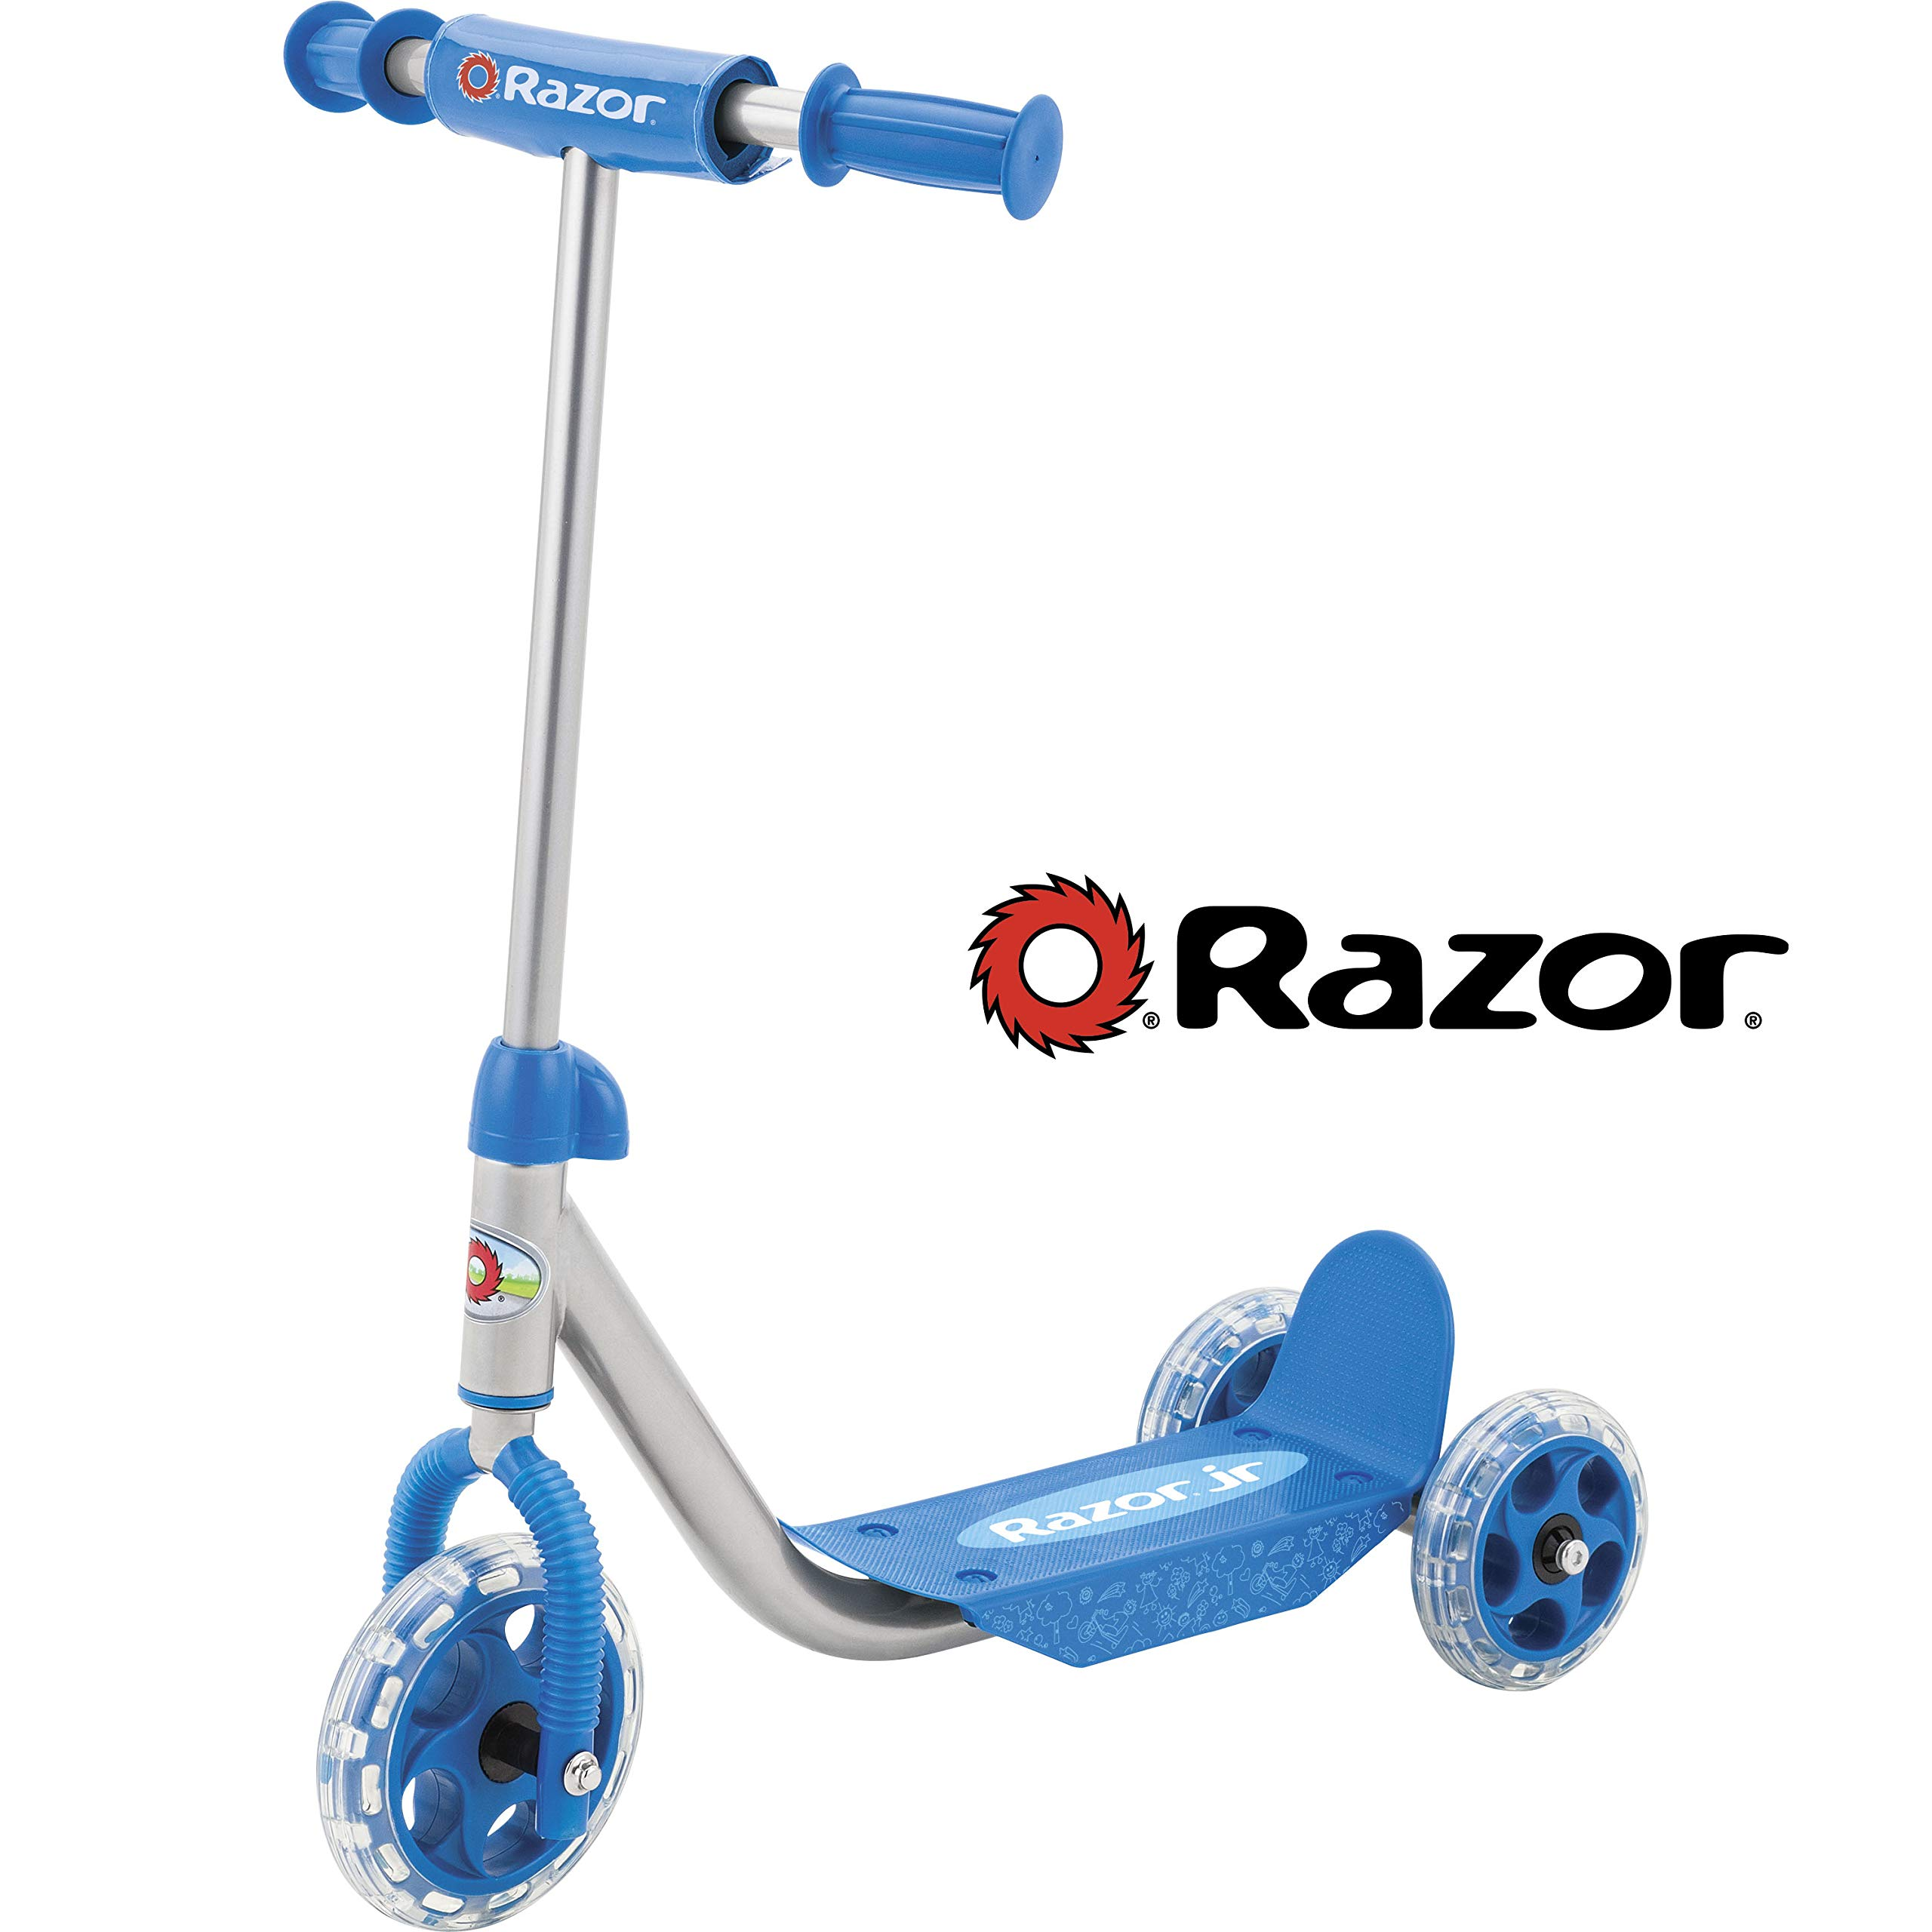 Razor Jr. Lil' Kick Scooter by Razor